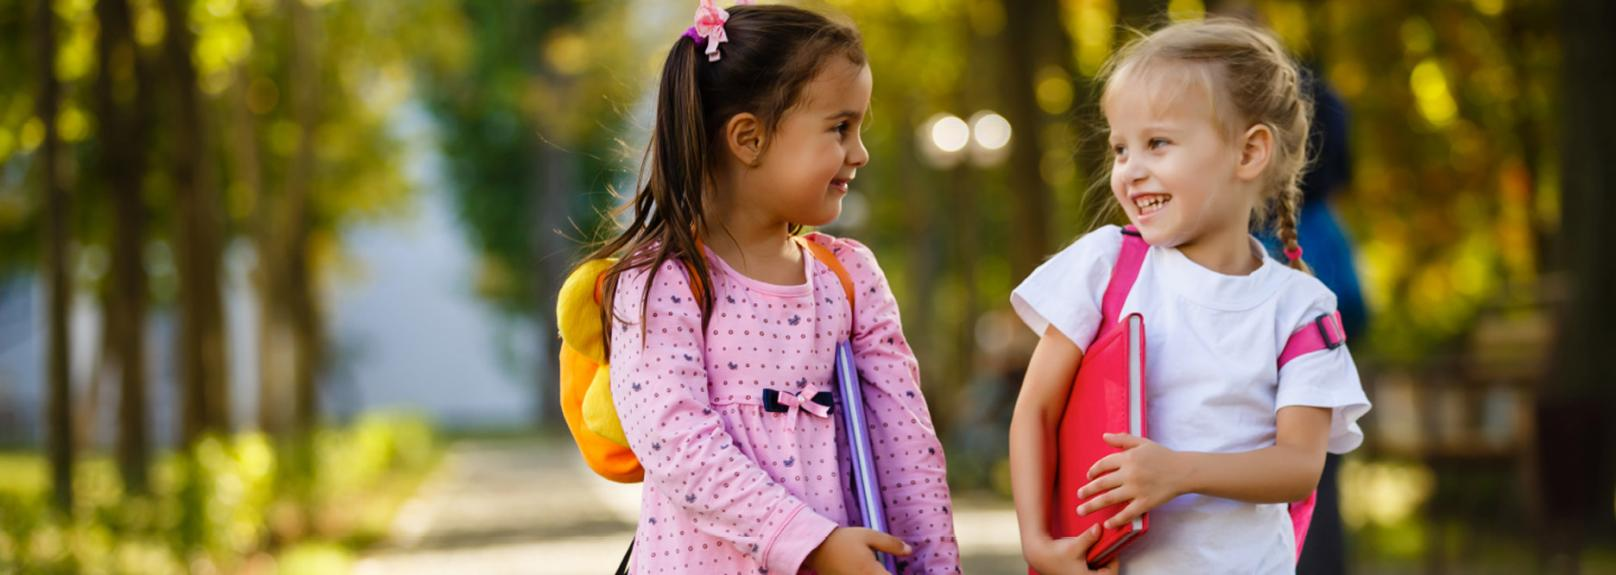 Two young girls wearing backpacks and carrying school books - early childhood education recruitment agency